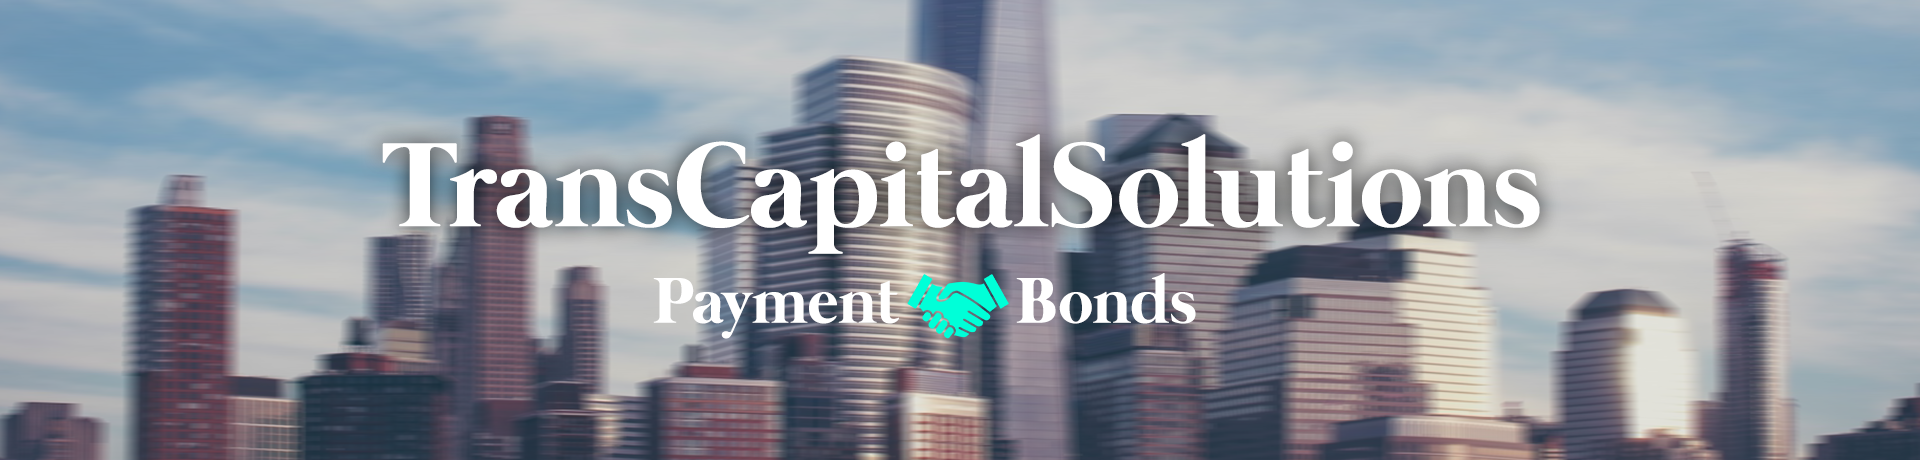 TransCapitalSolutions Payment Bonds